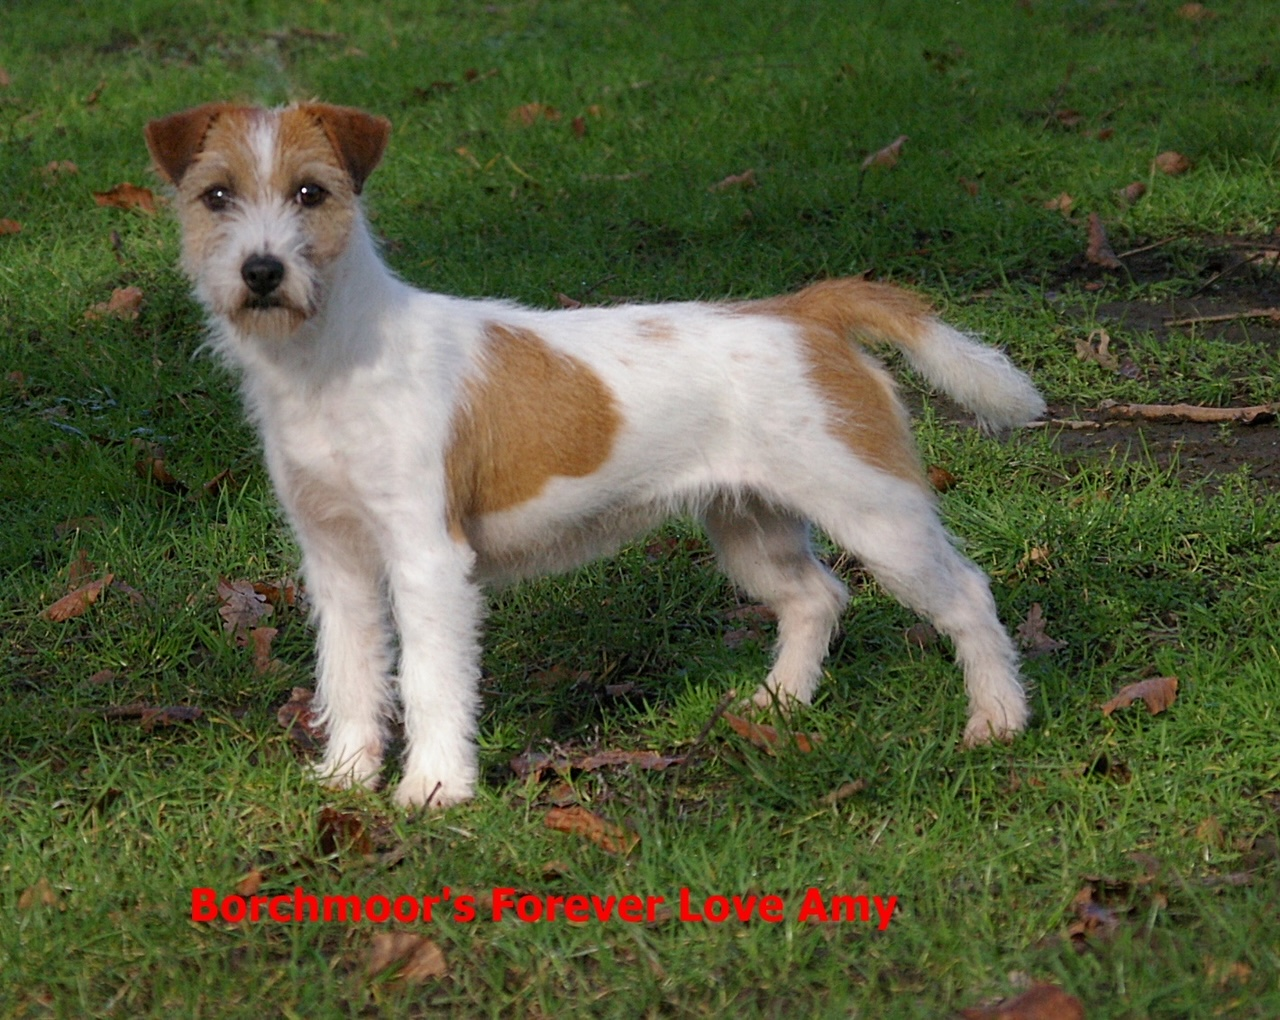 Borchmoor's Forever Love Amy (Kennel Borchmoor's)